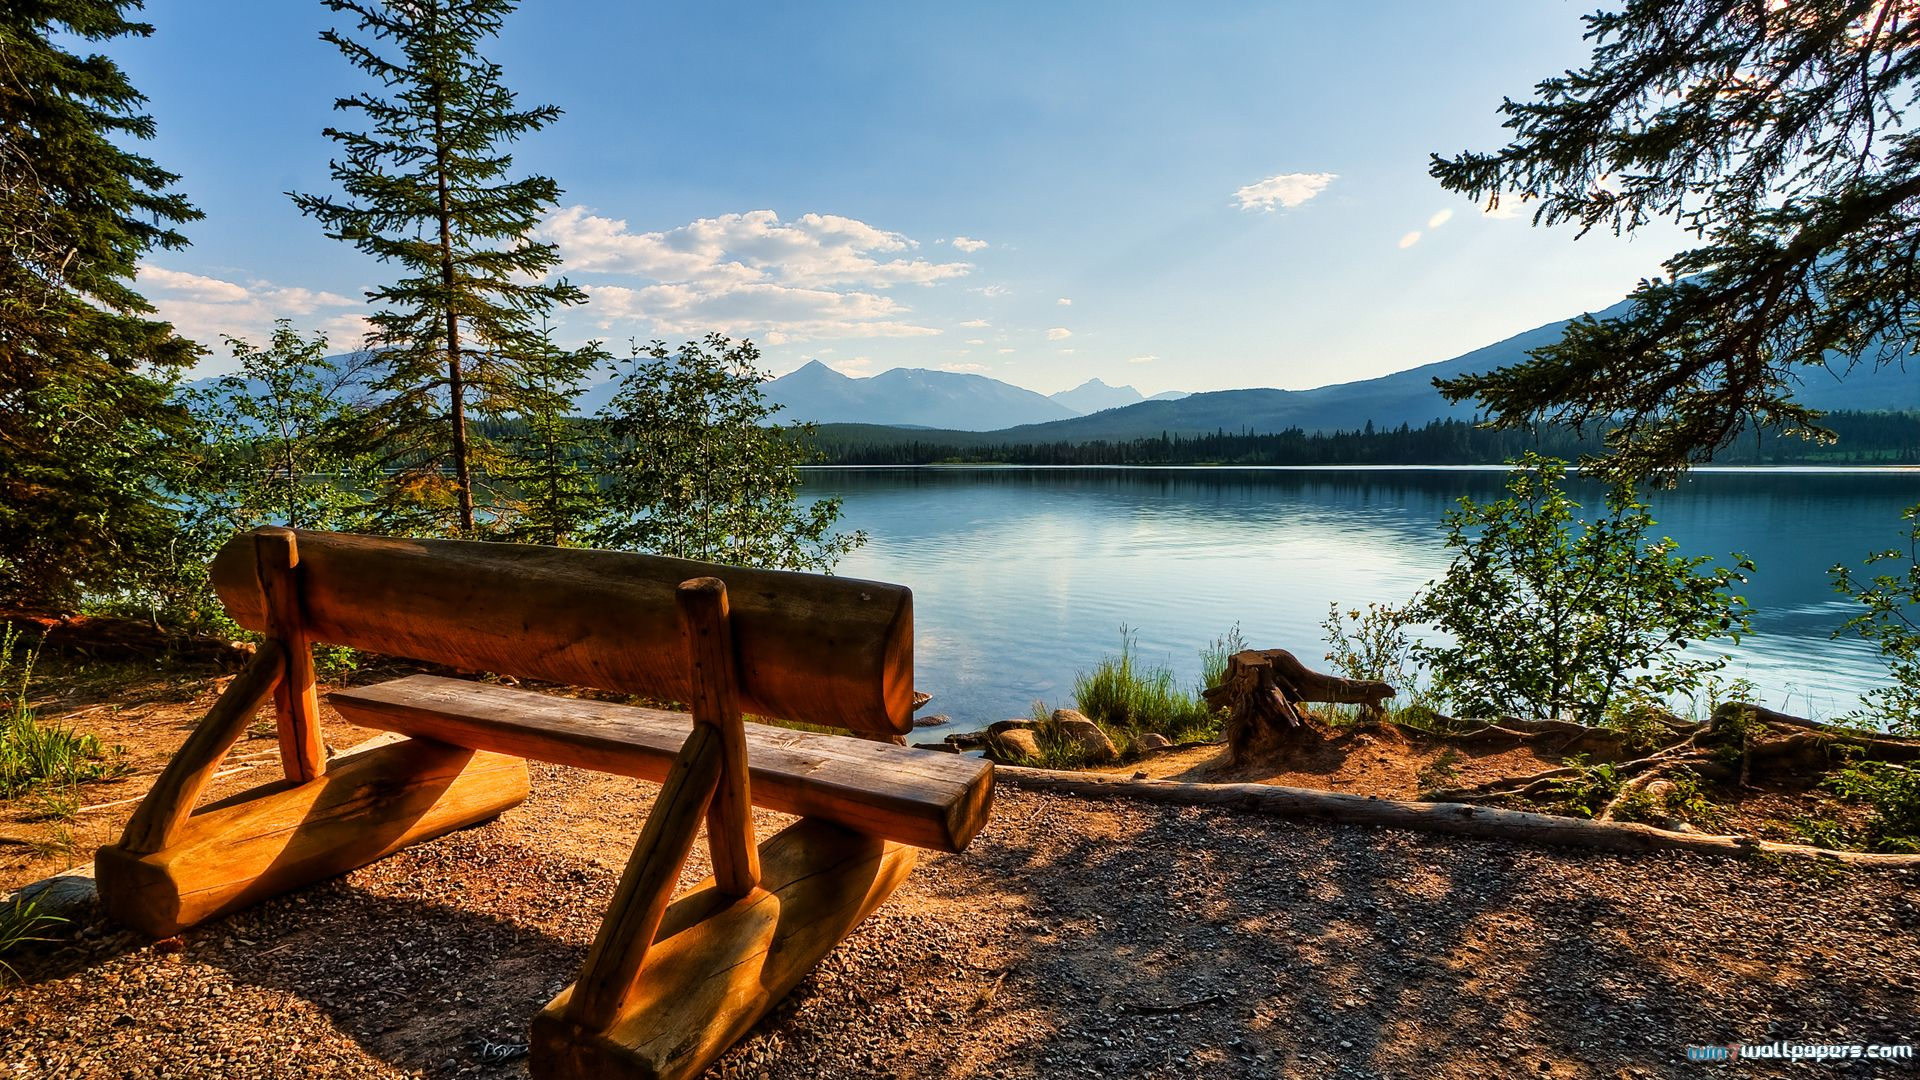 Download Relaxing Nature 1920x1080